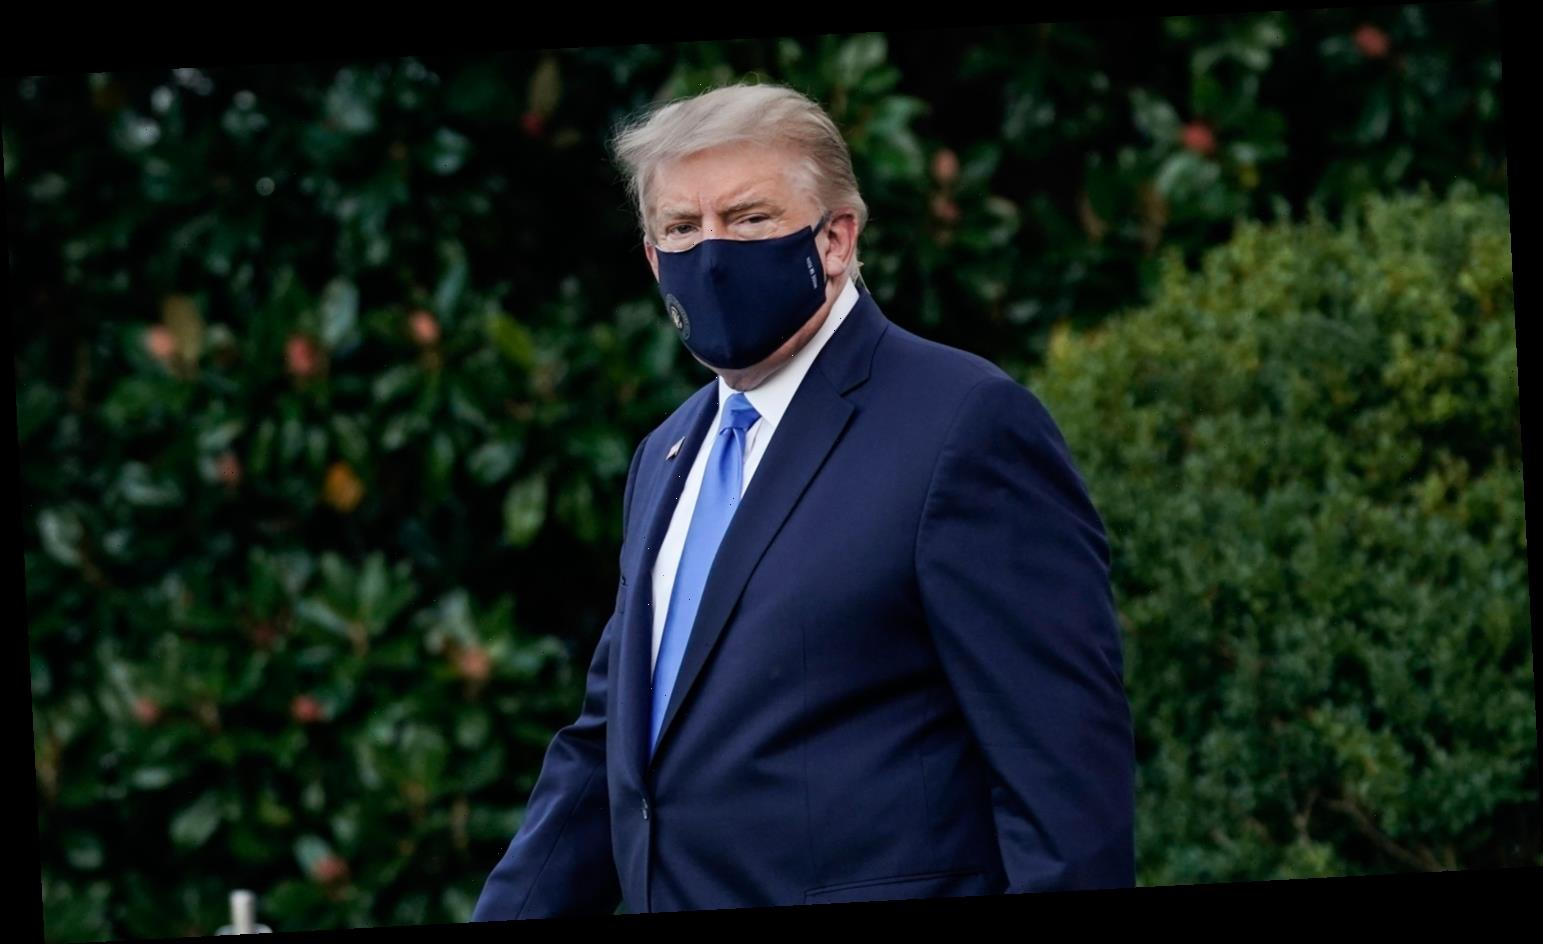 PHOTOS: Donald Trump Leaves White House for Hospital, Plus Sends Video Update on COVID-19 Battle